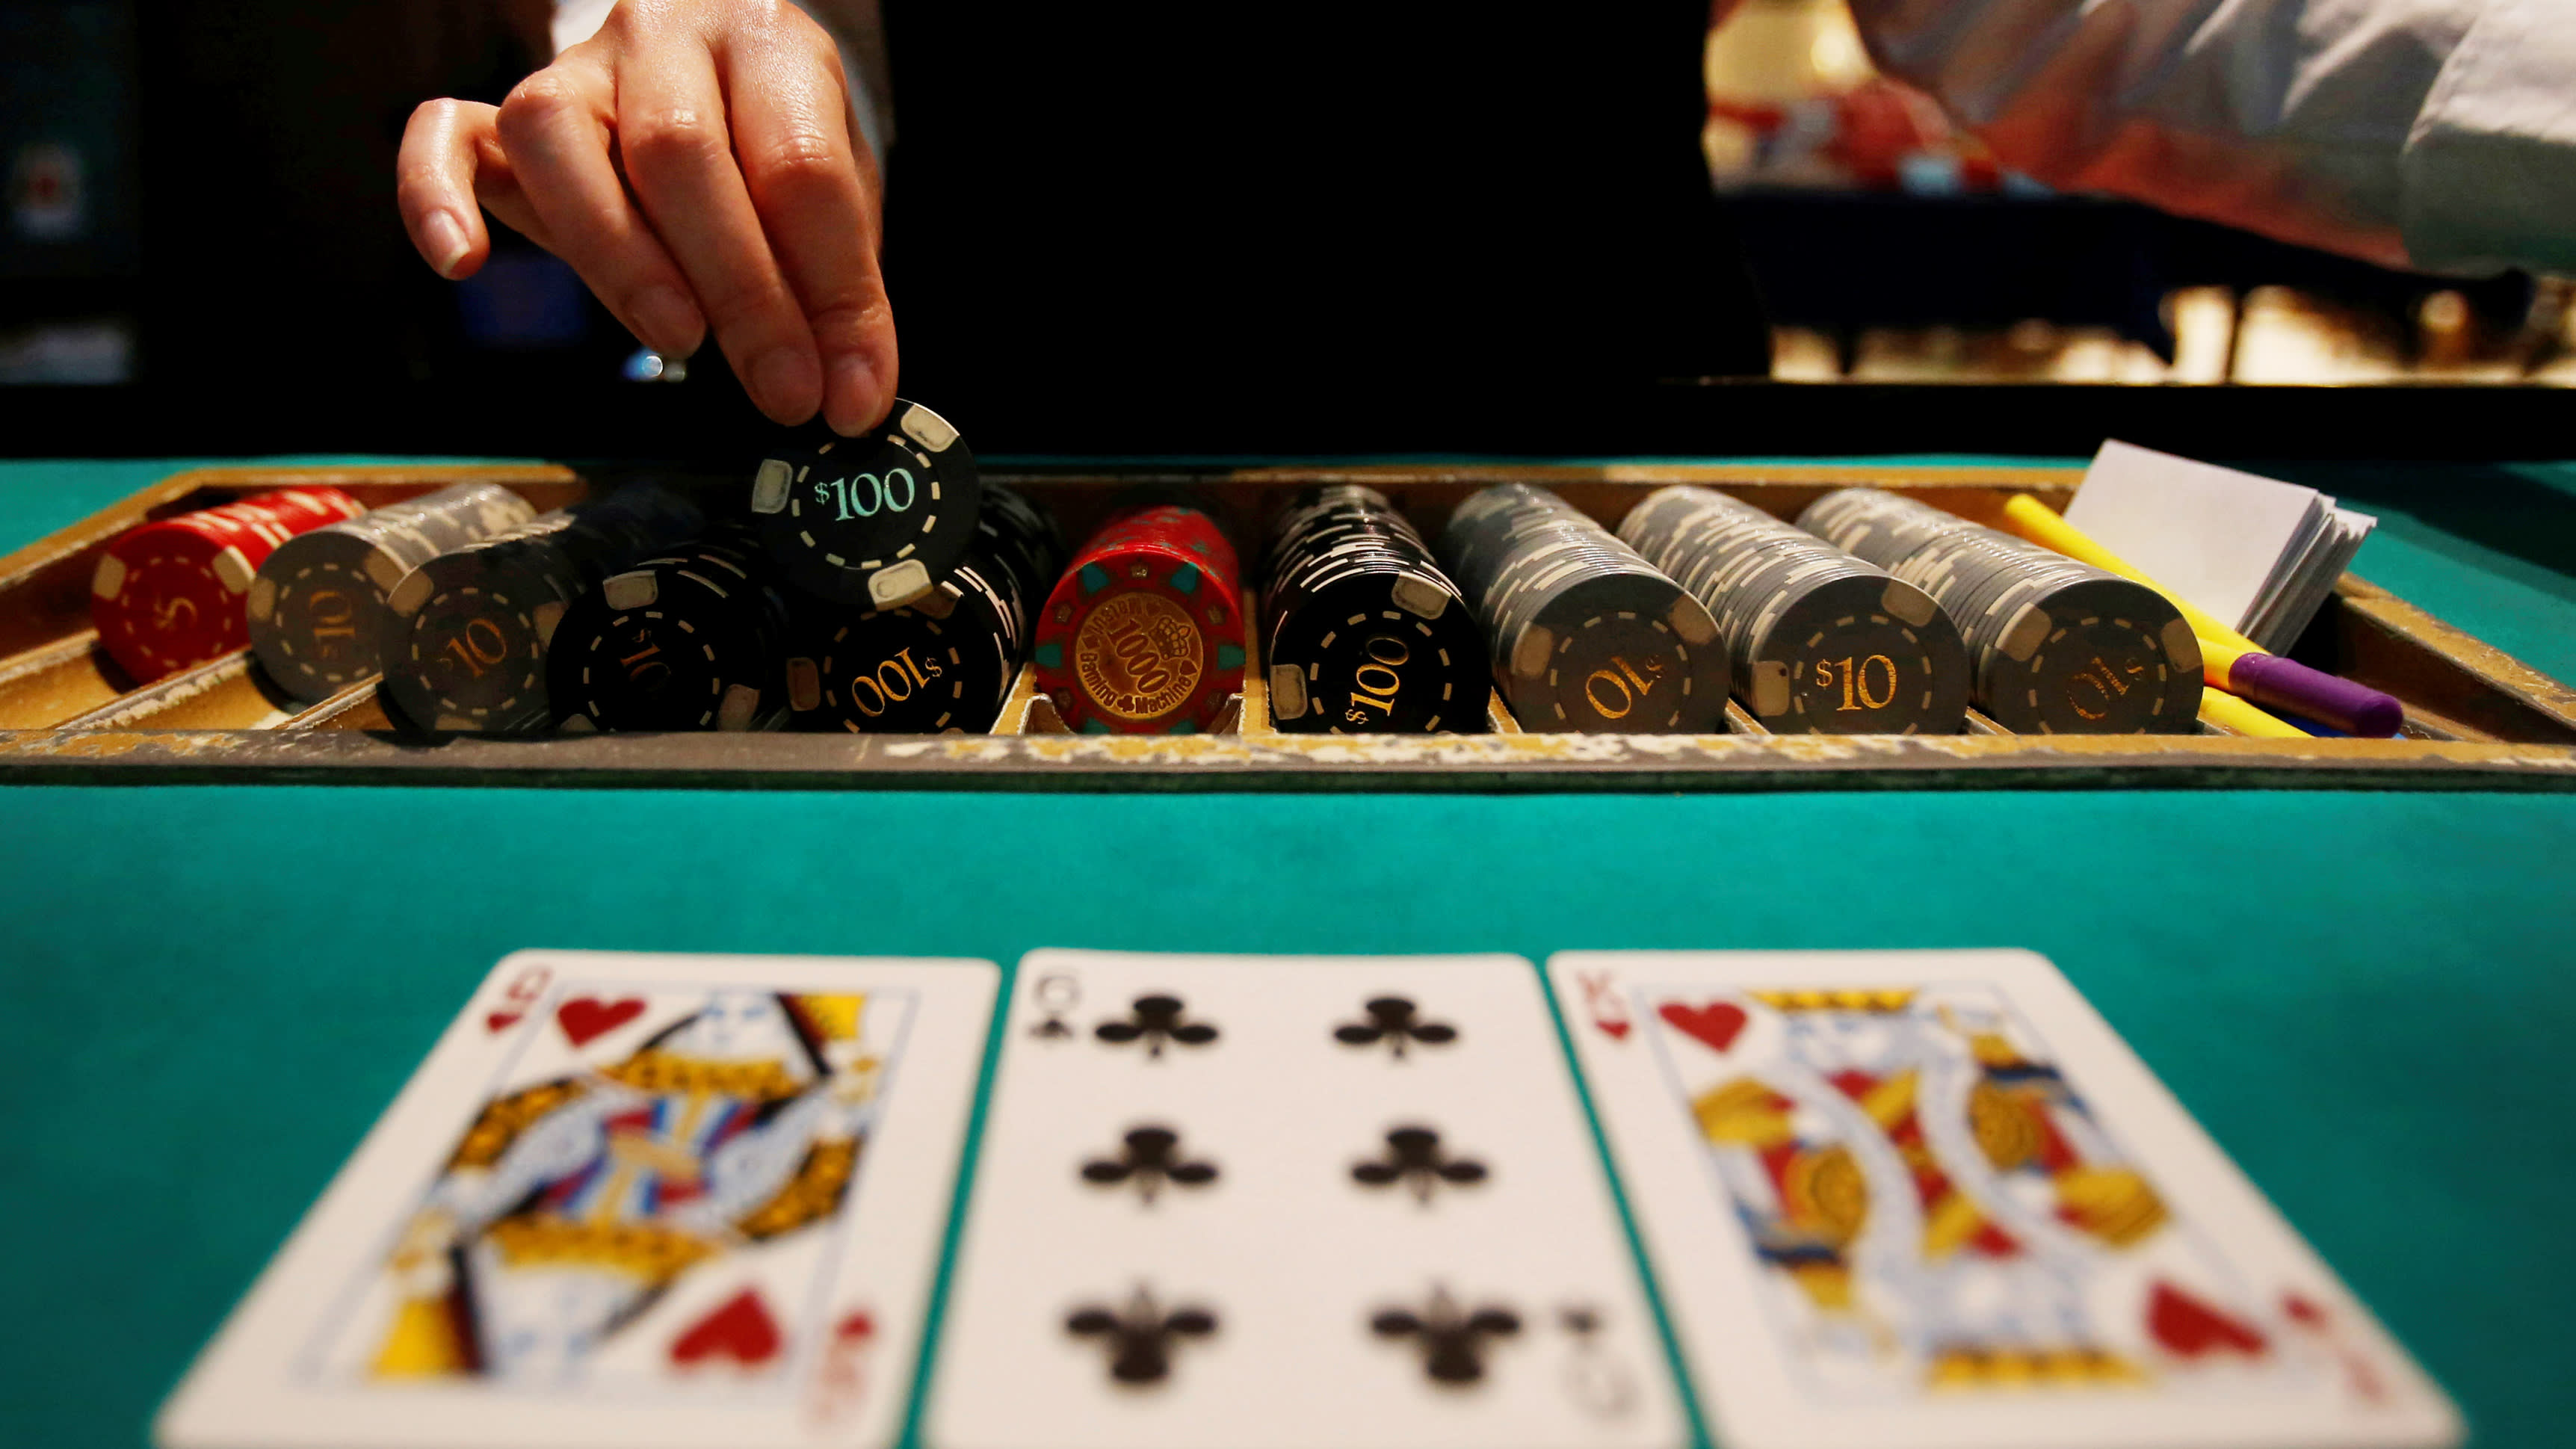 US Gambling Laws - Online Gambling Laws In The United States